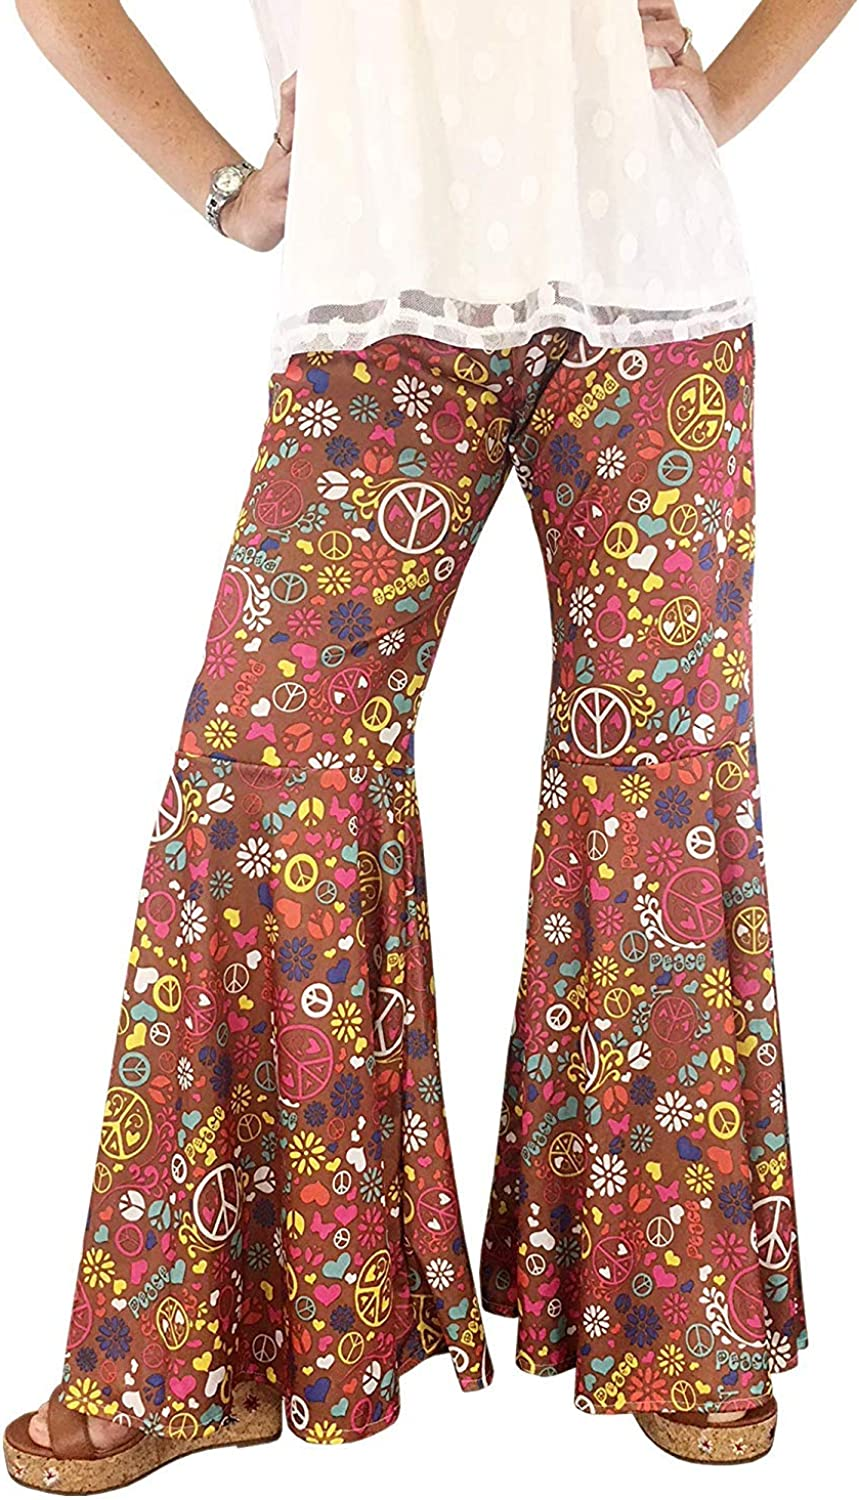 70's Clothes for Women, Groovy Hippie Bell Bottom Flared Costume Pant, Peace Sign